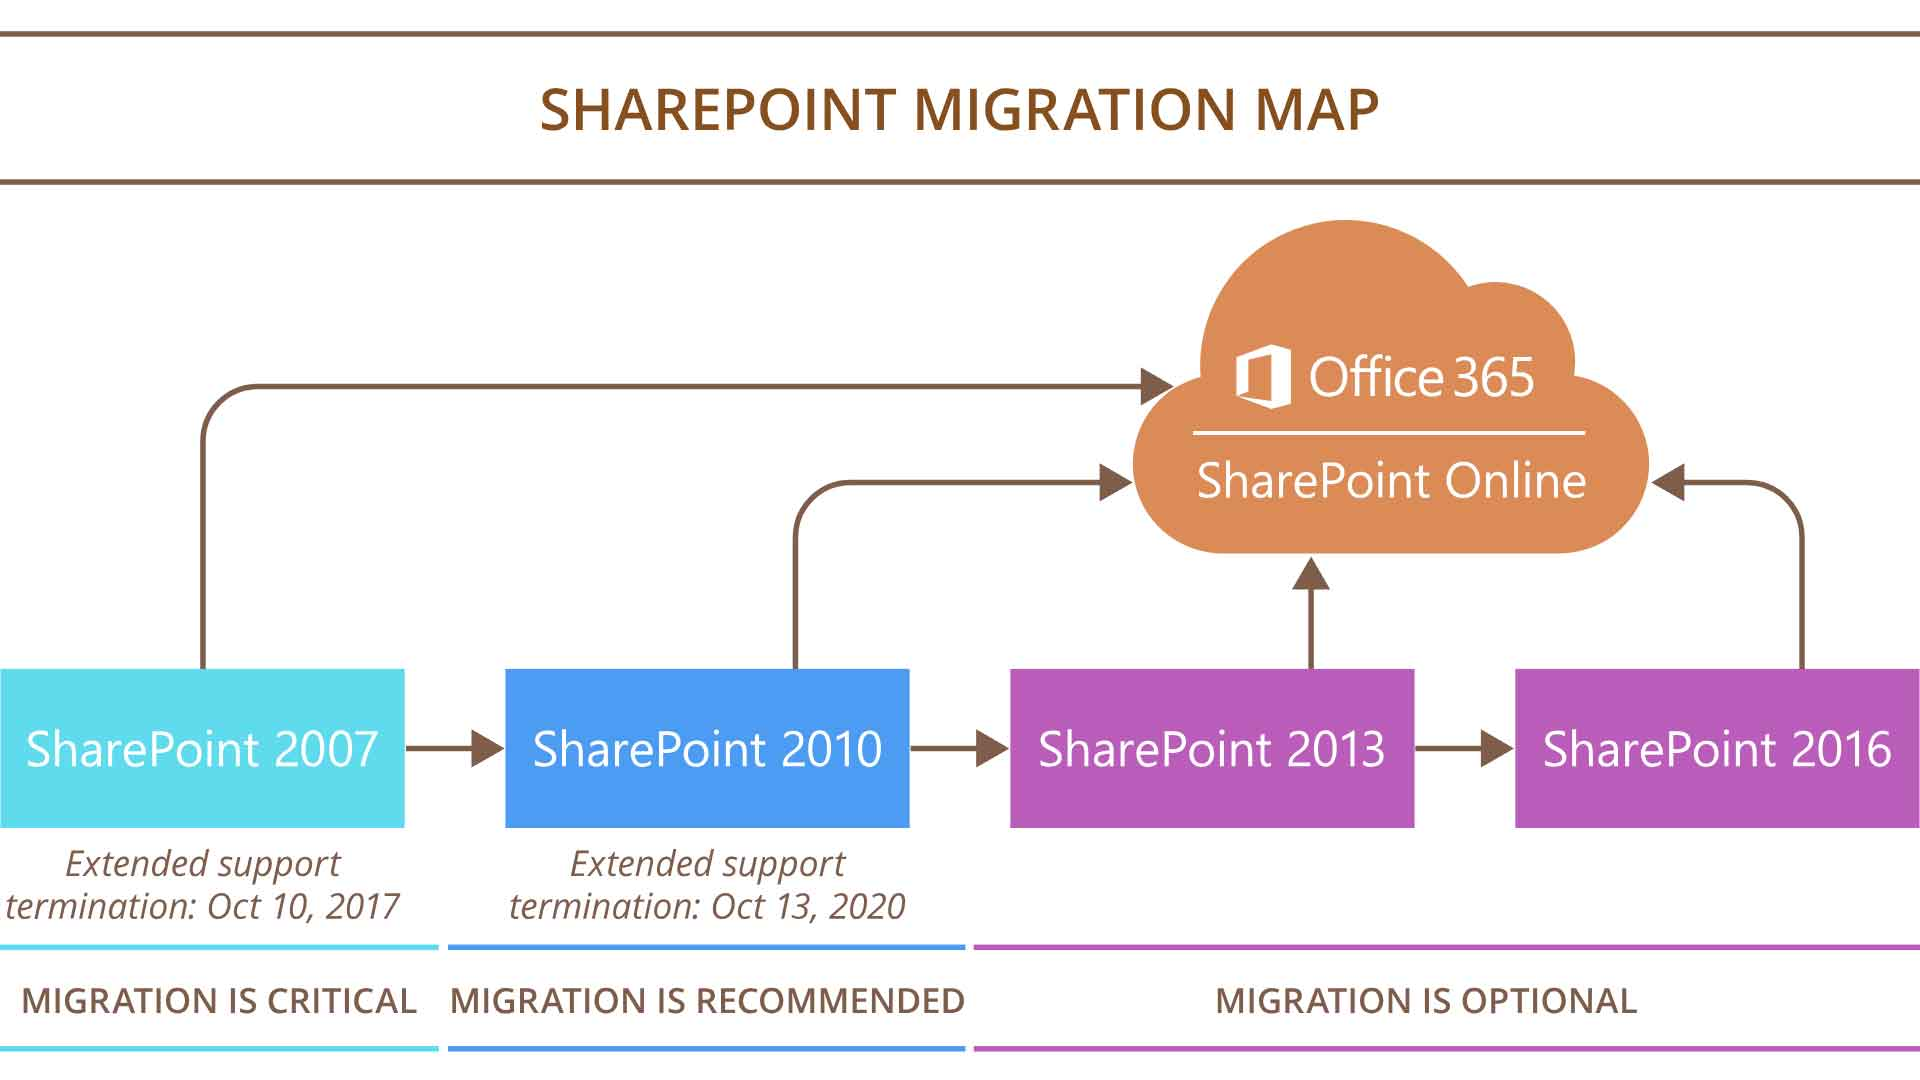 sharepoint 2010 site diagram 2016 dodge durango alternator wiring migrate from to office 365 things